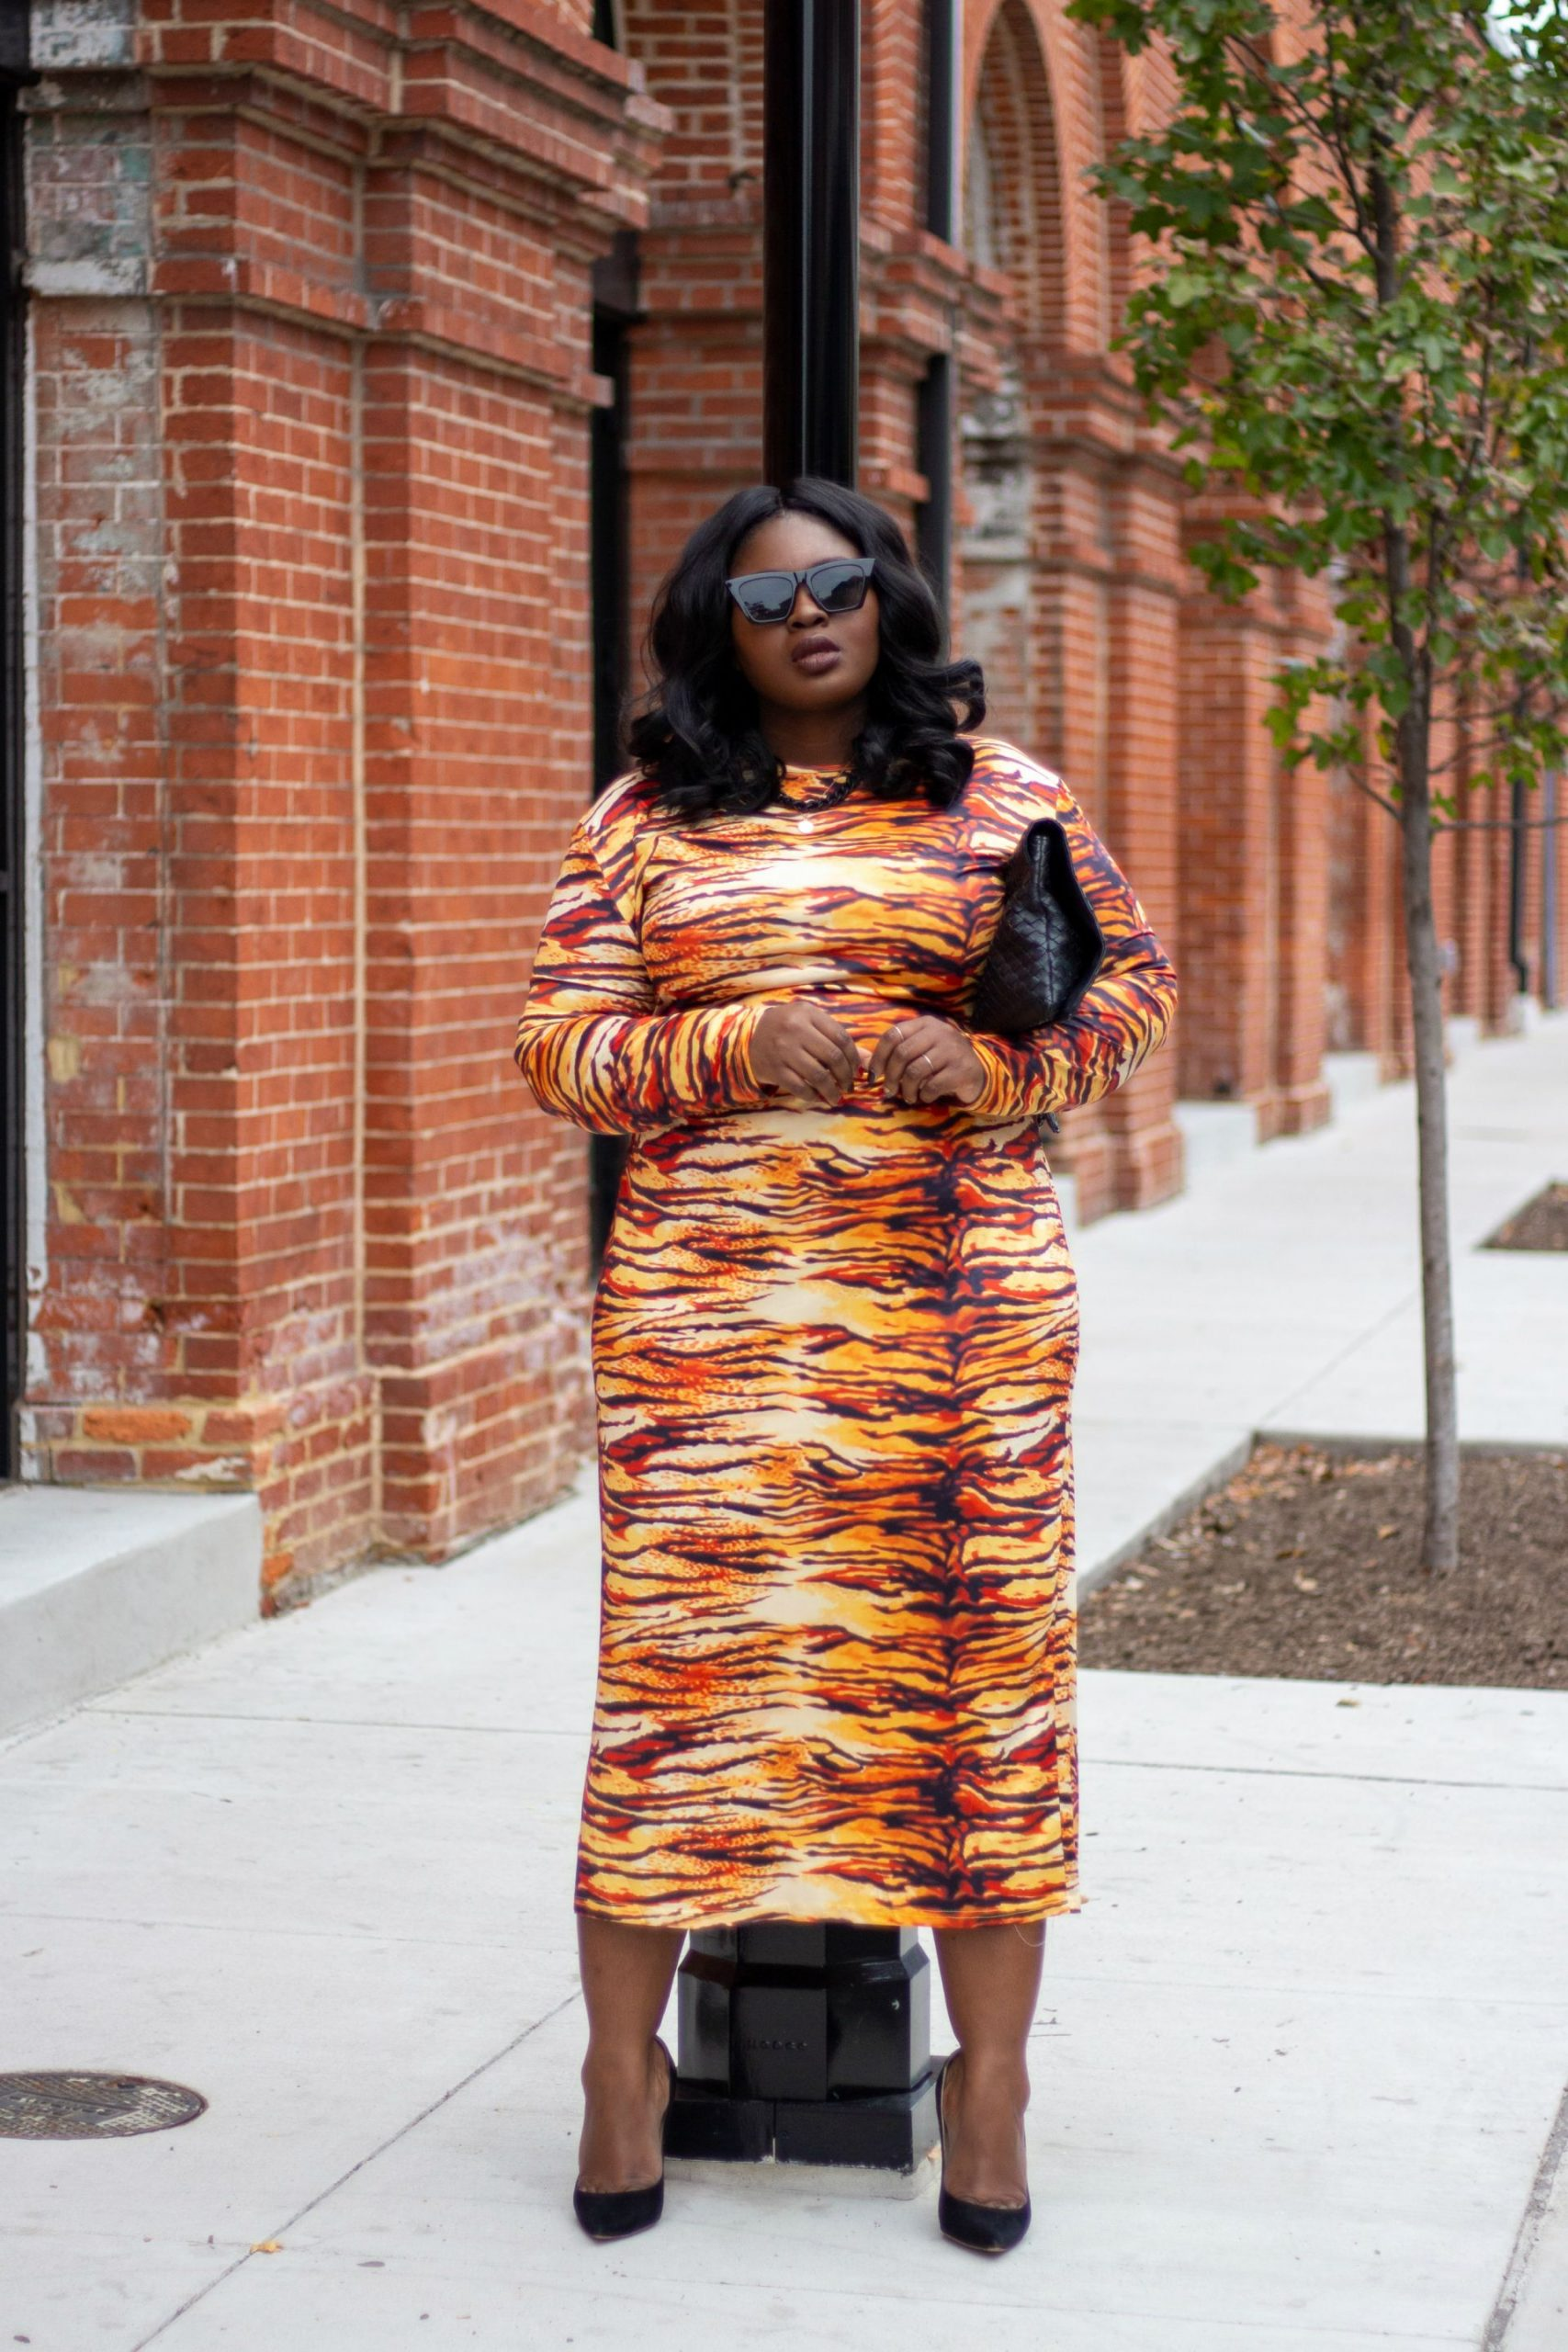 Cyber monday 2019 Sale picks from supplechic a fashion and lifestyle blog based in Baltimore